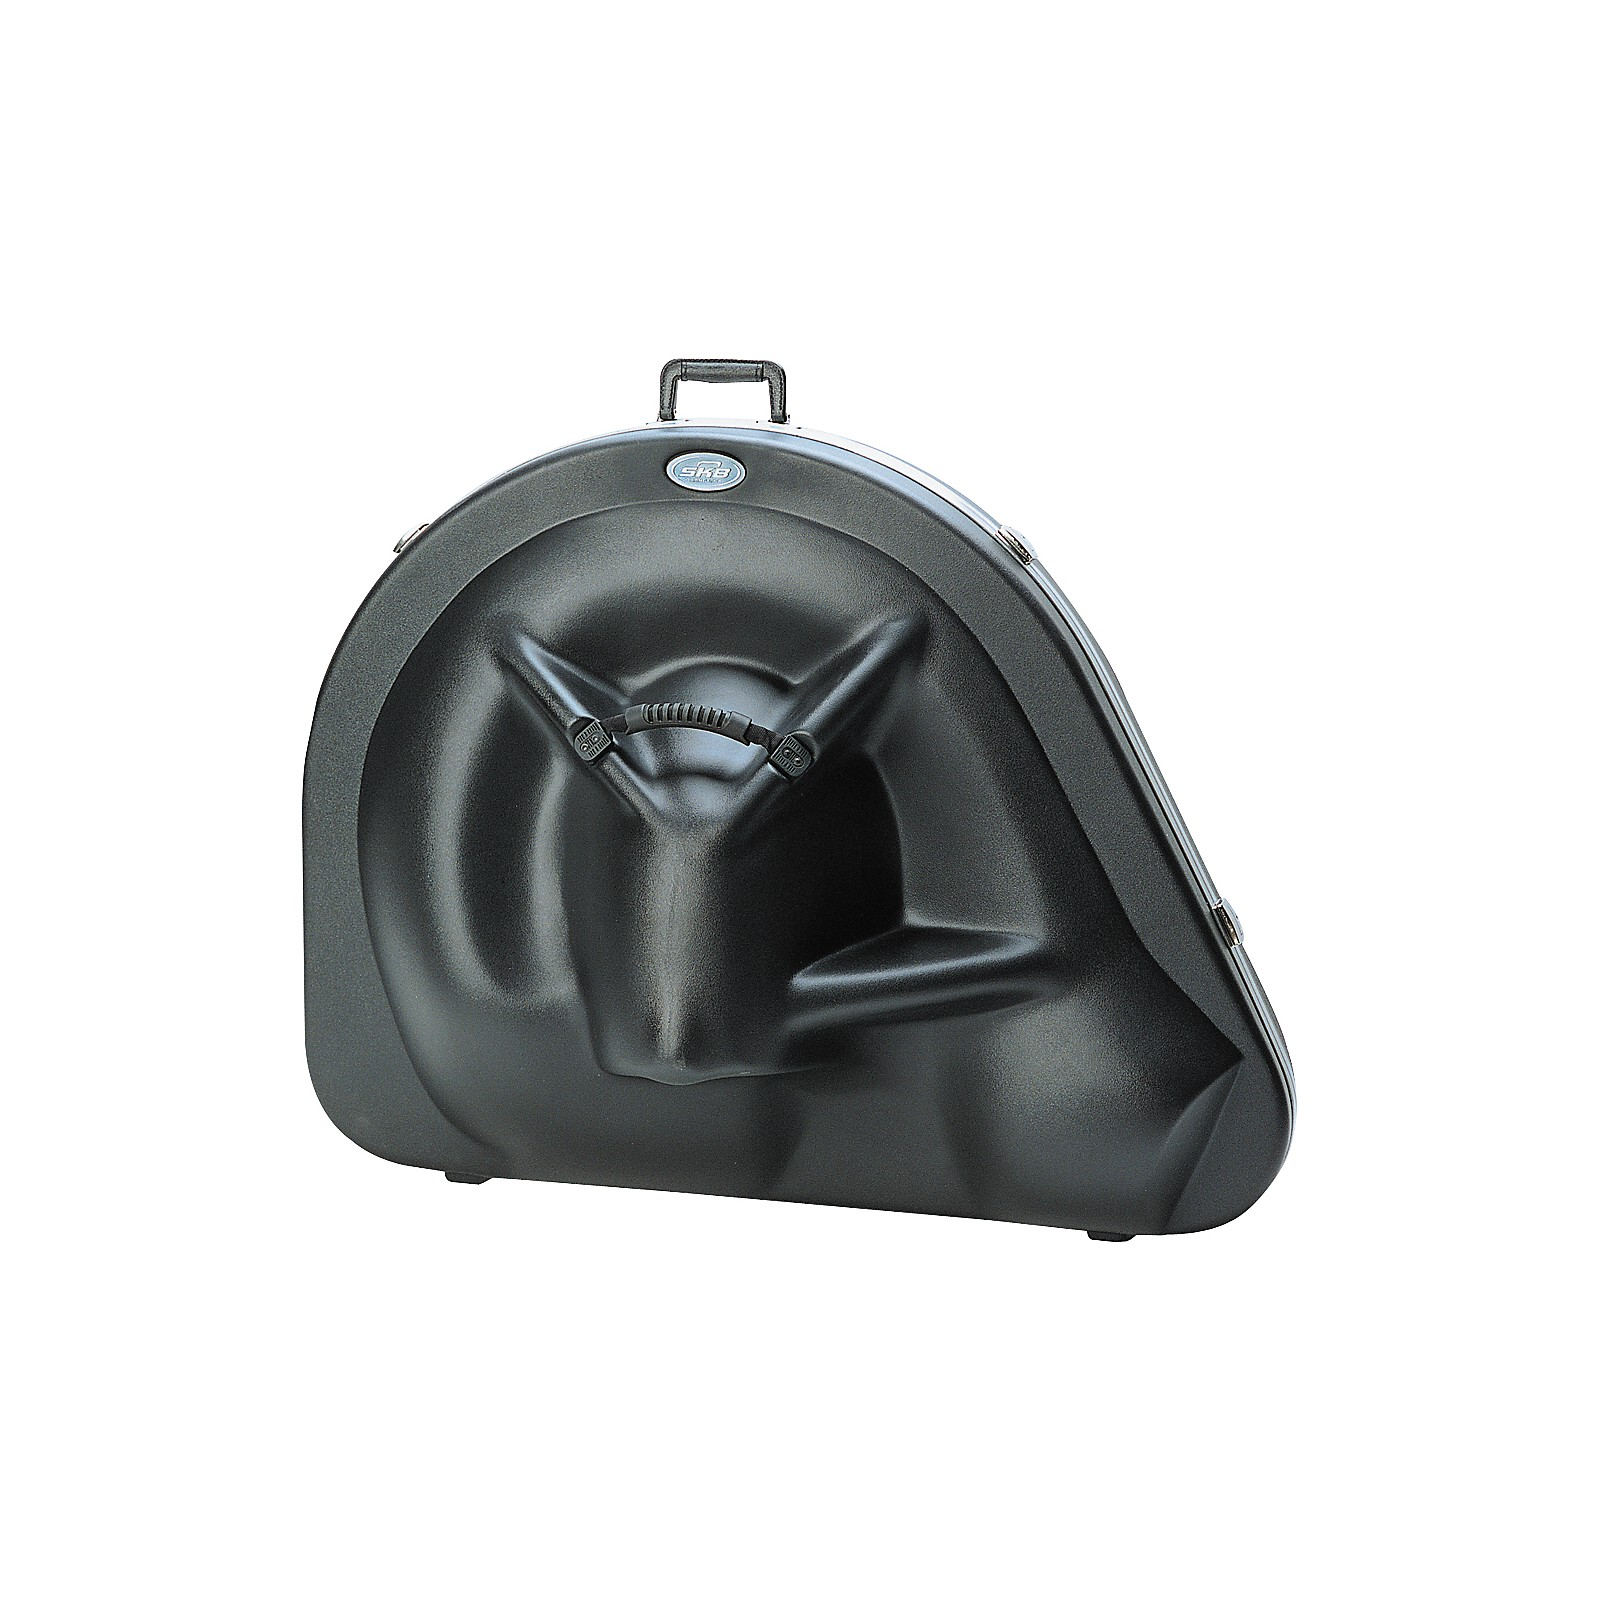 Open Box SKB SKB-380 Sousaphone Case with Wheels